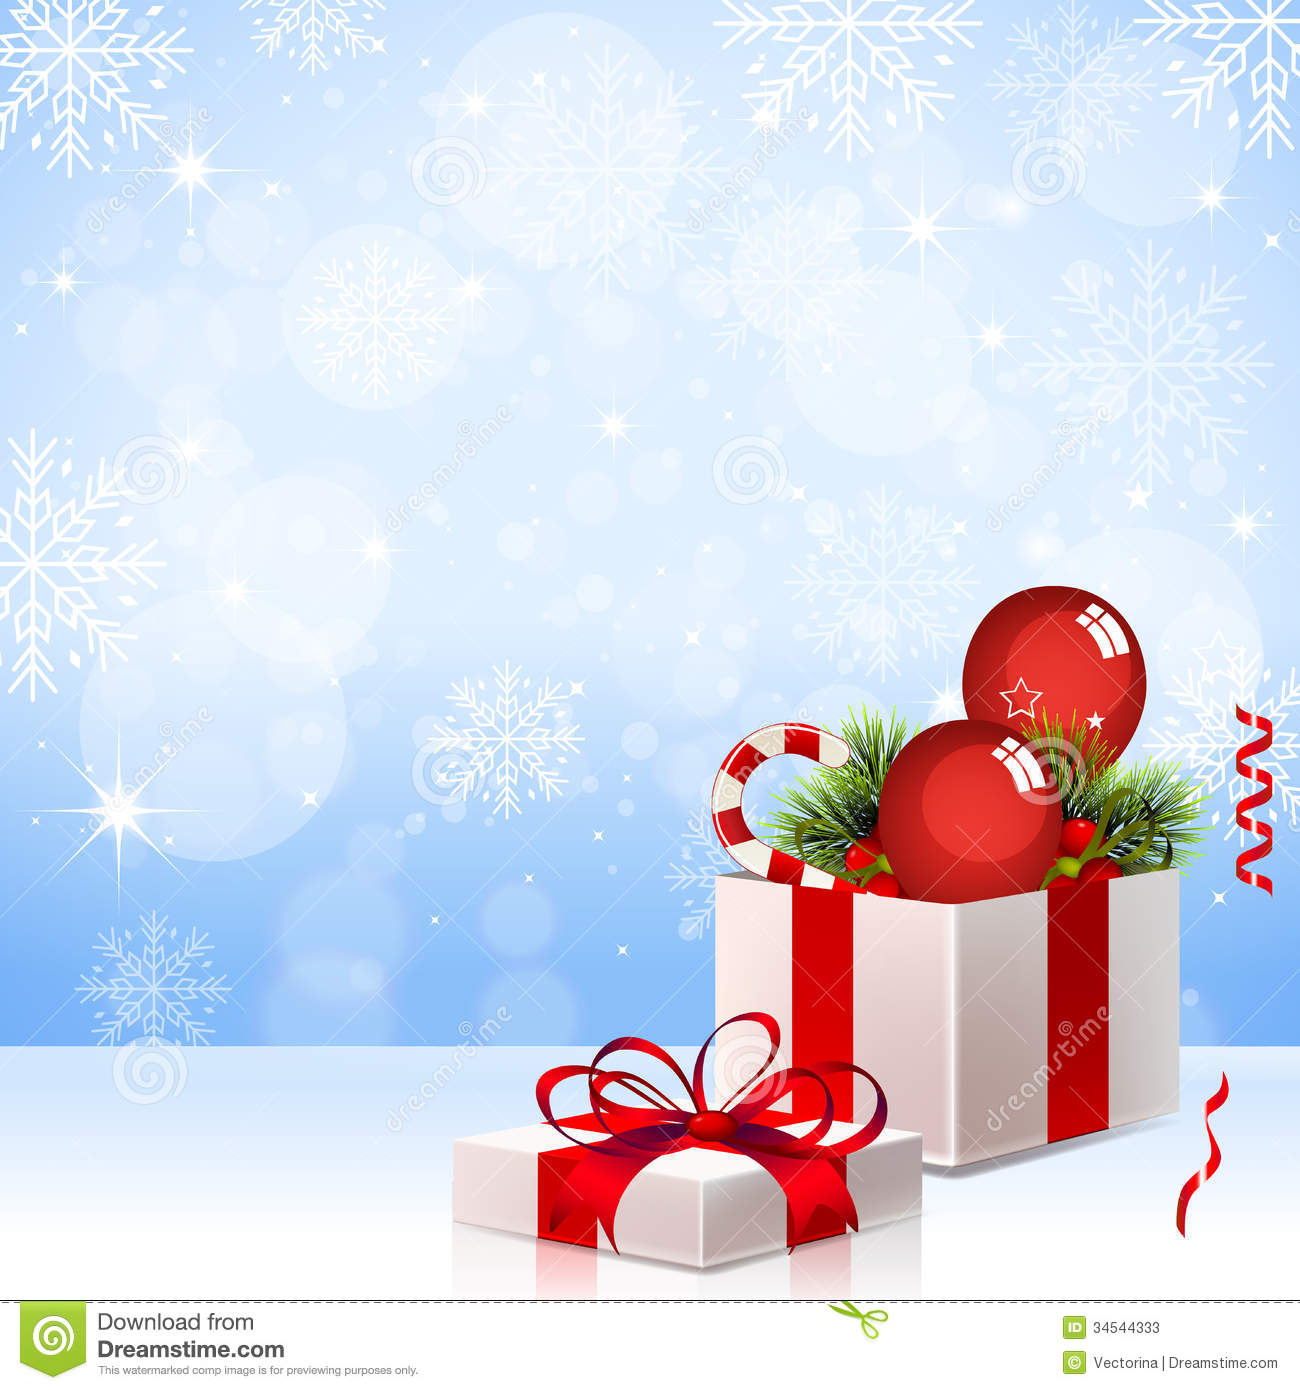 Christmas Gift Background: Christmas Background With Gift Box